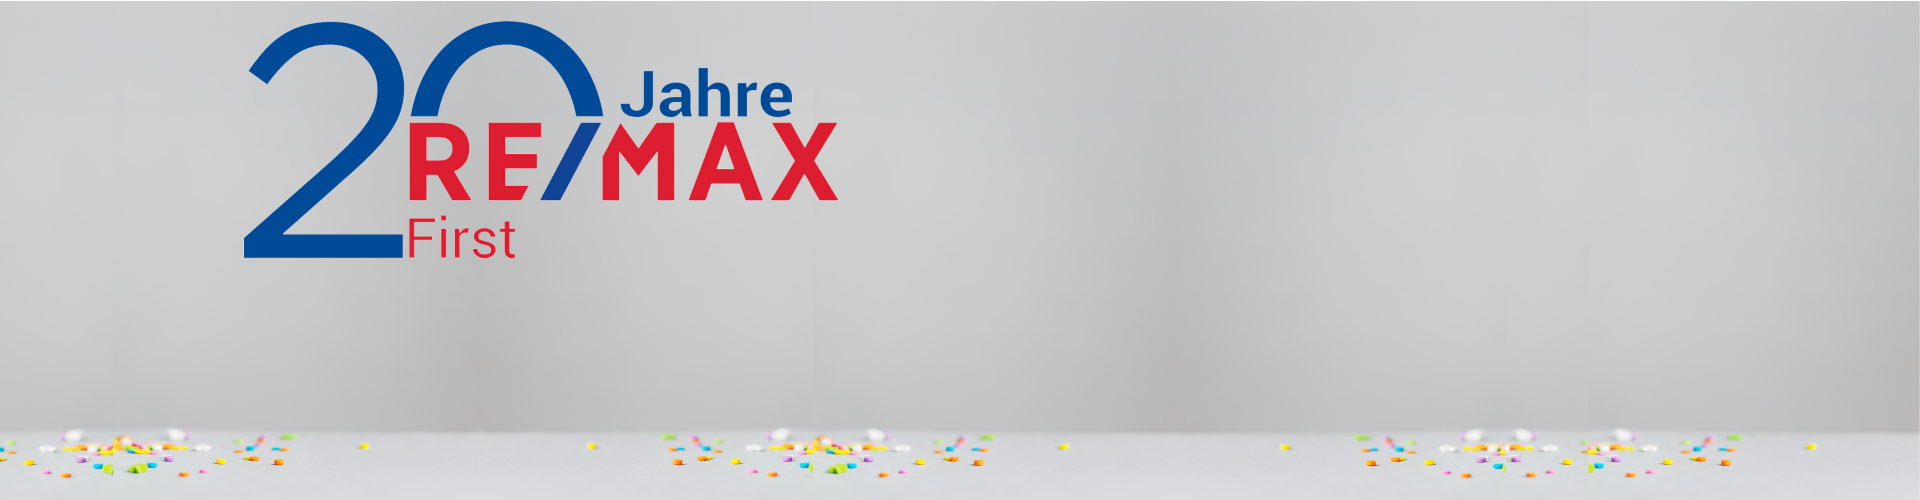 Immobilien - RE/MAX First